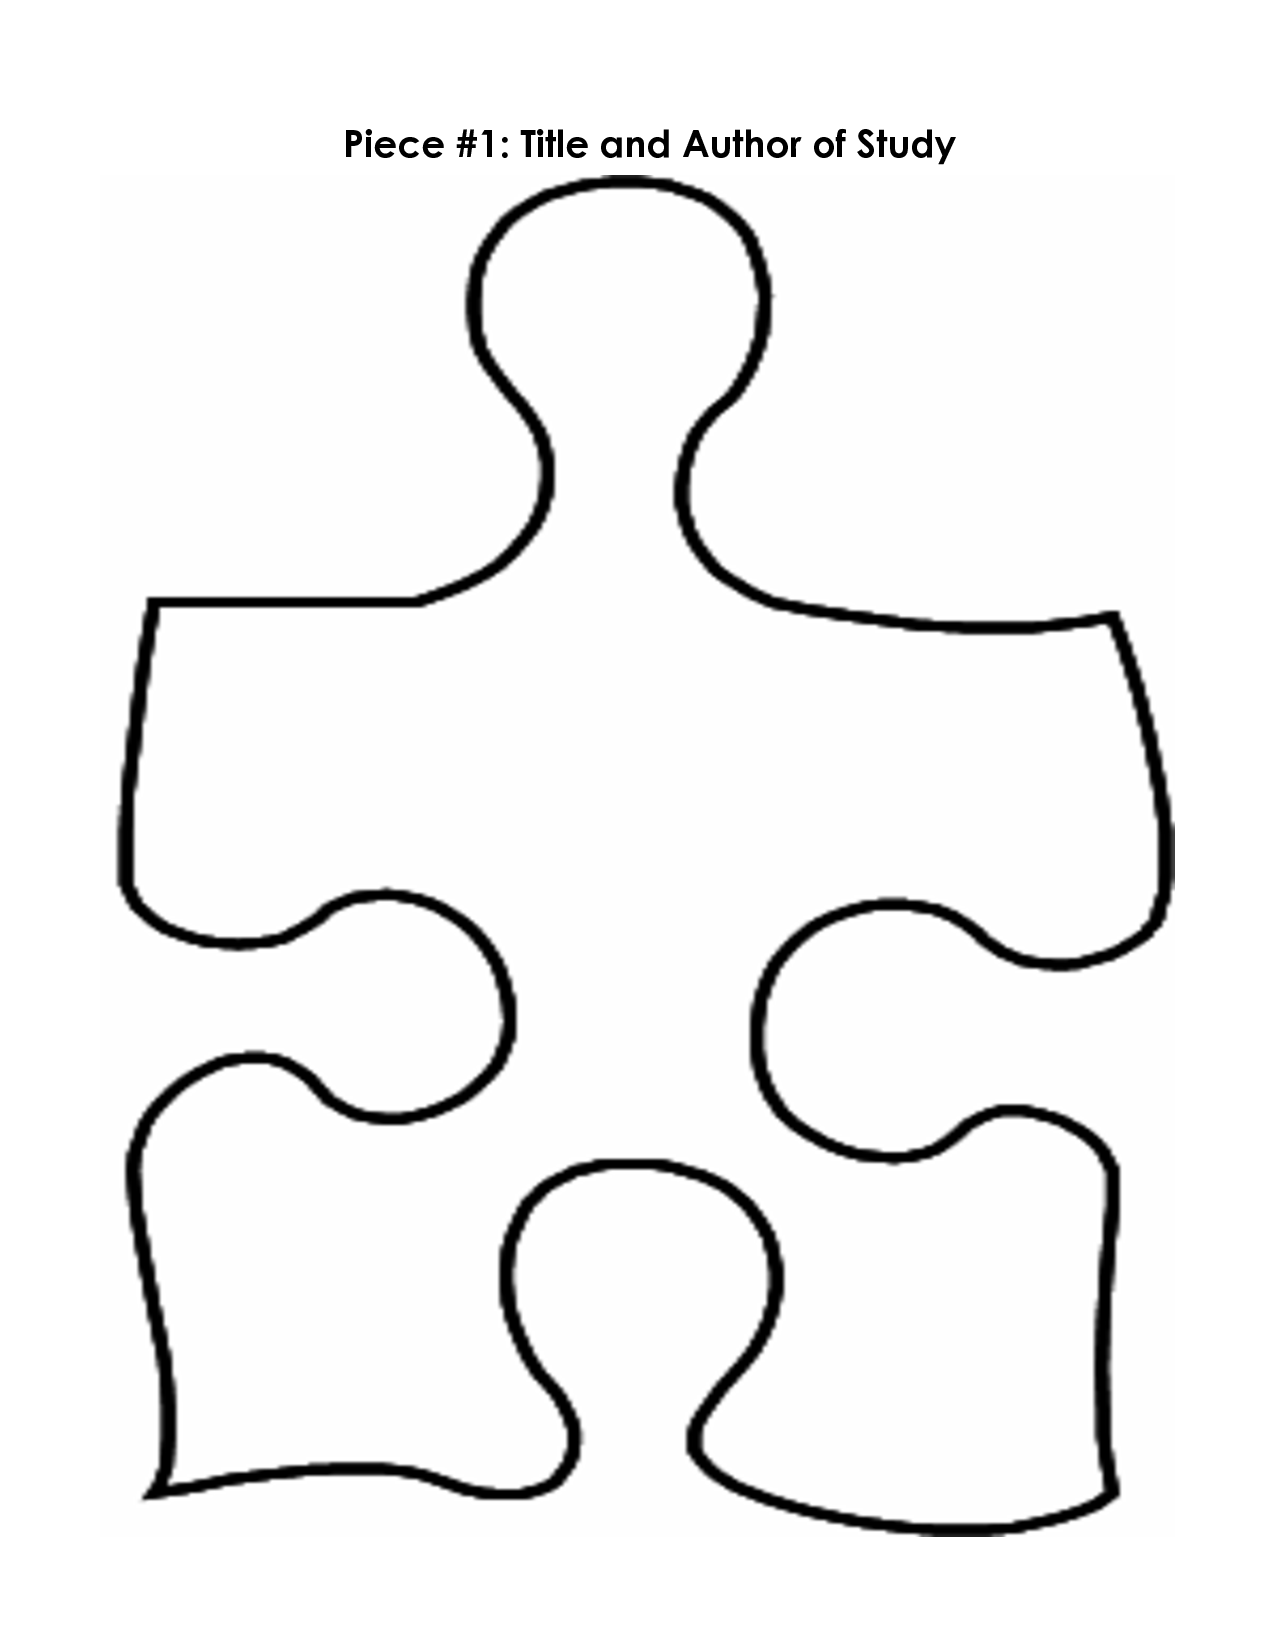 puzzle piece outline coloring pages - photo#8